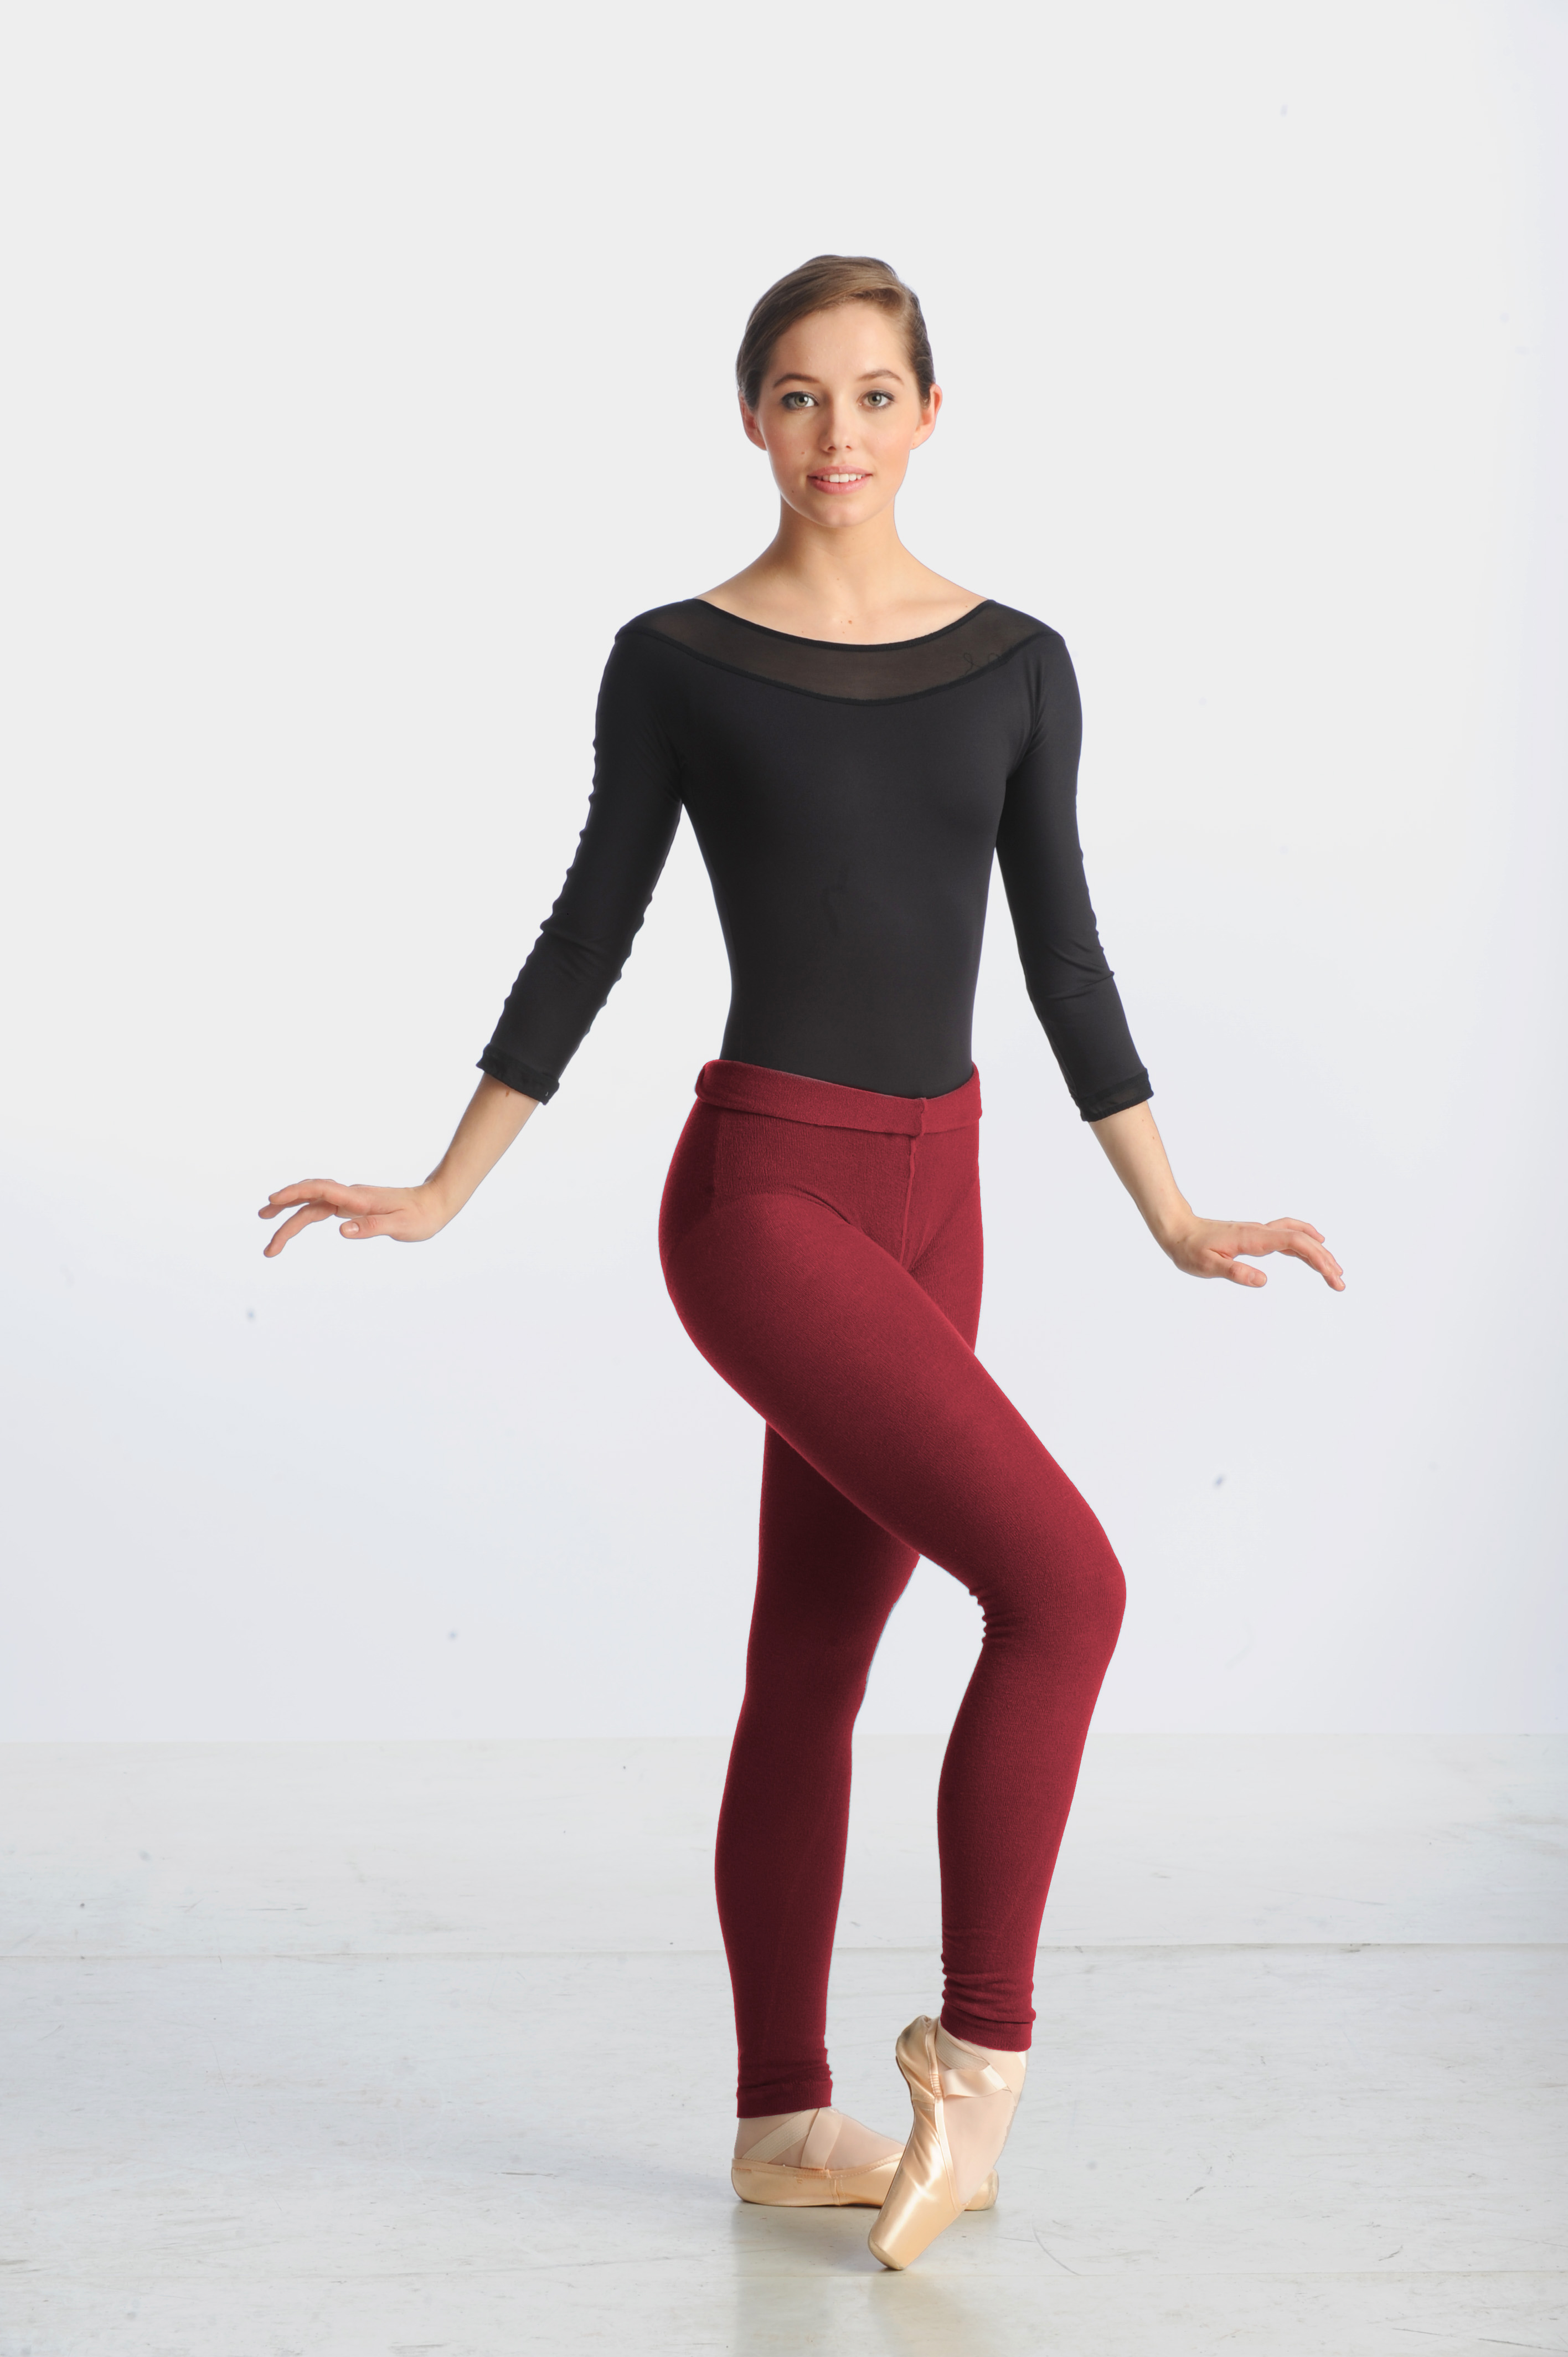 Look stylish and sexy in winters with sweater tights